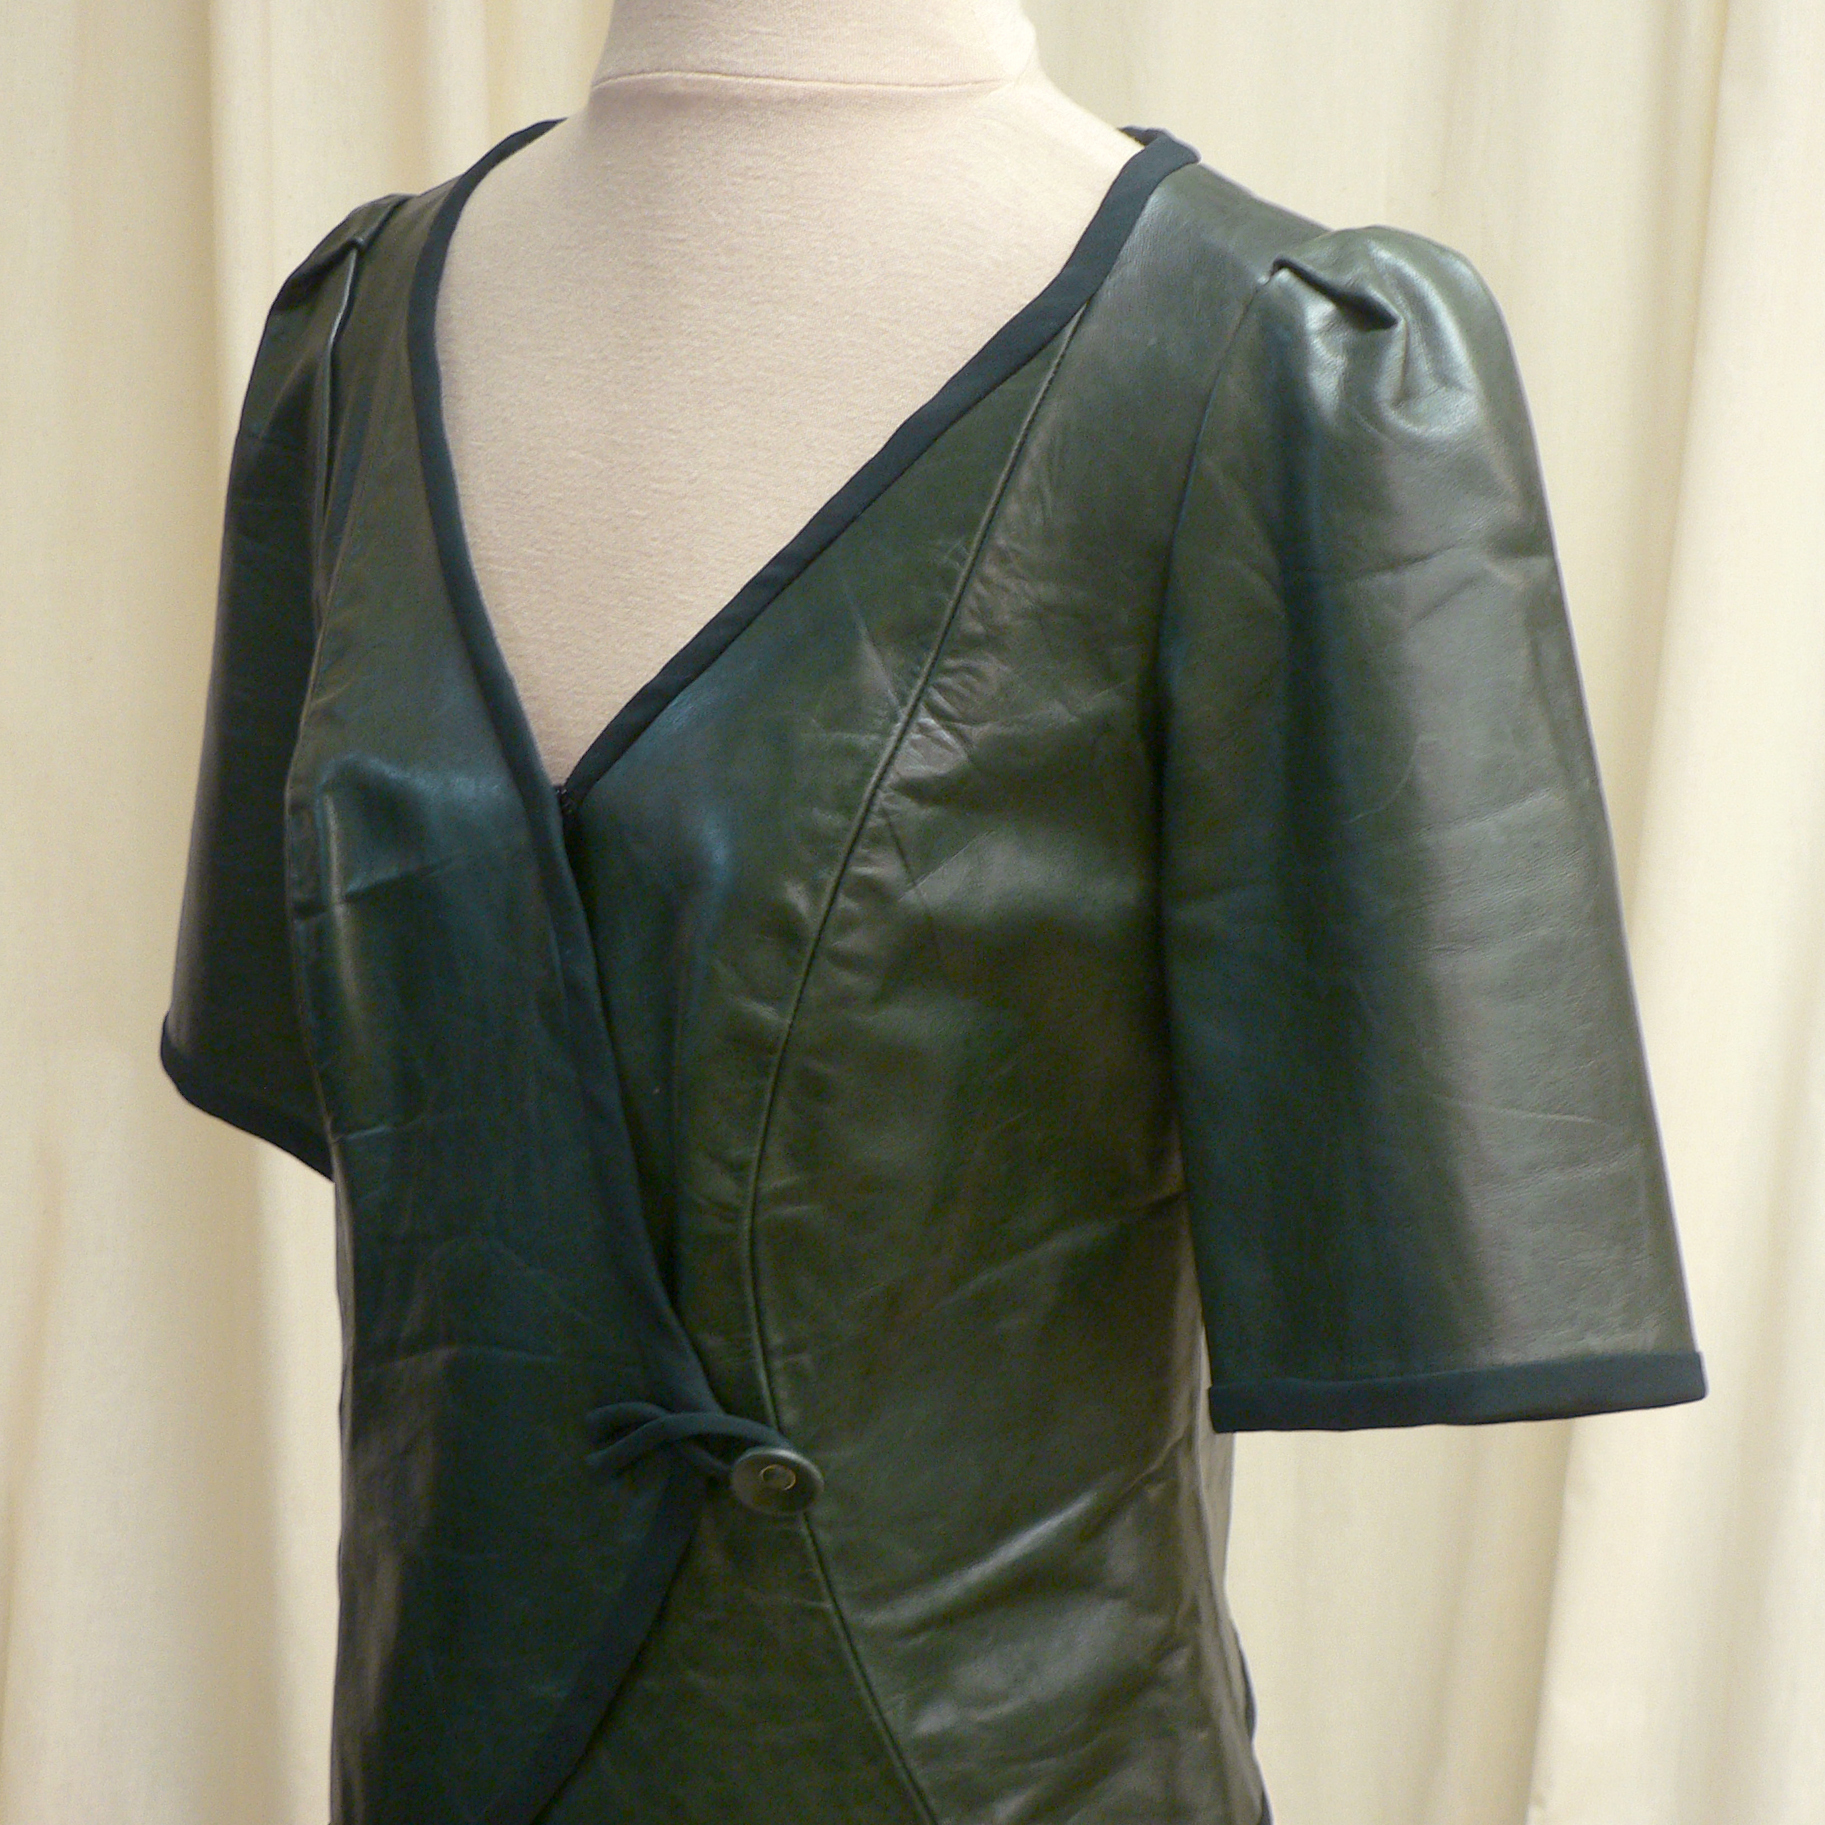 ensemble07_front_detail3.jpg